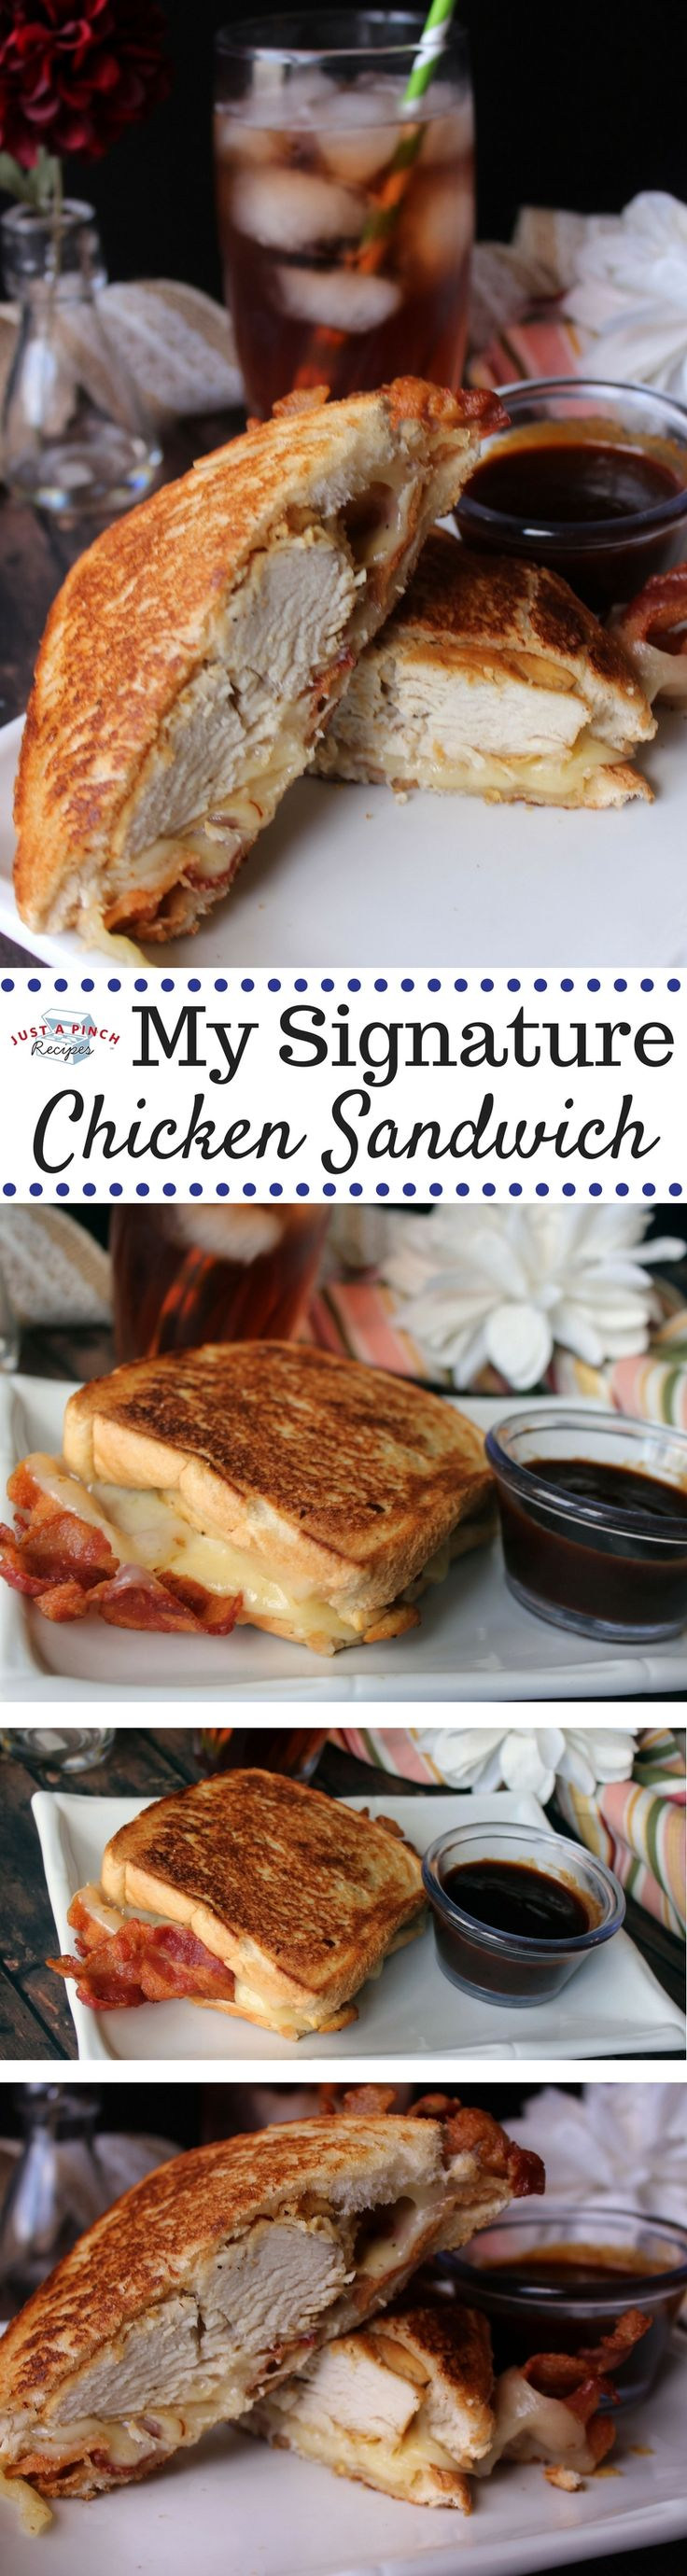 I made these homemade chicken sandwiches for dinner, tonight, and they were delicious! Gooey Swiss cheese, chicken and bacon, what is not to like?!